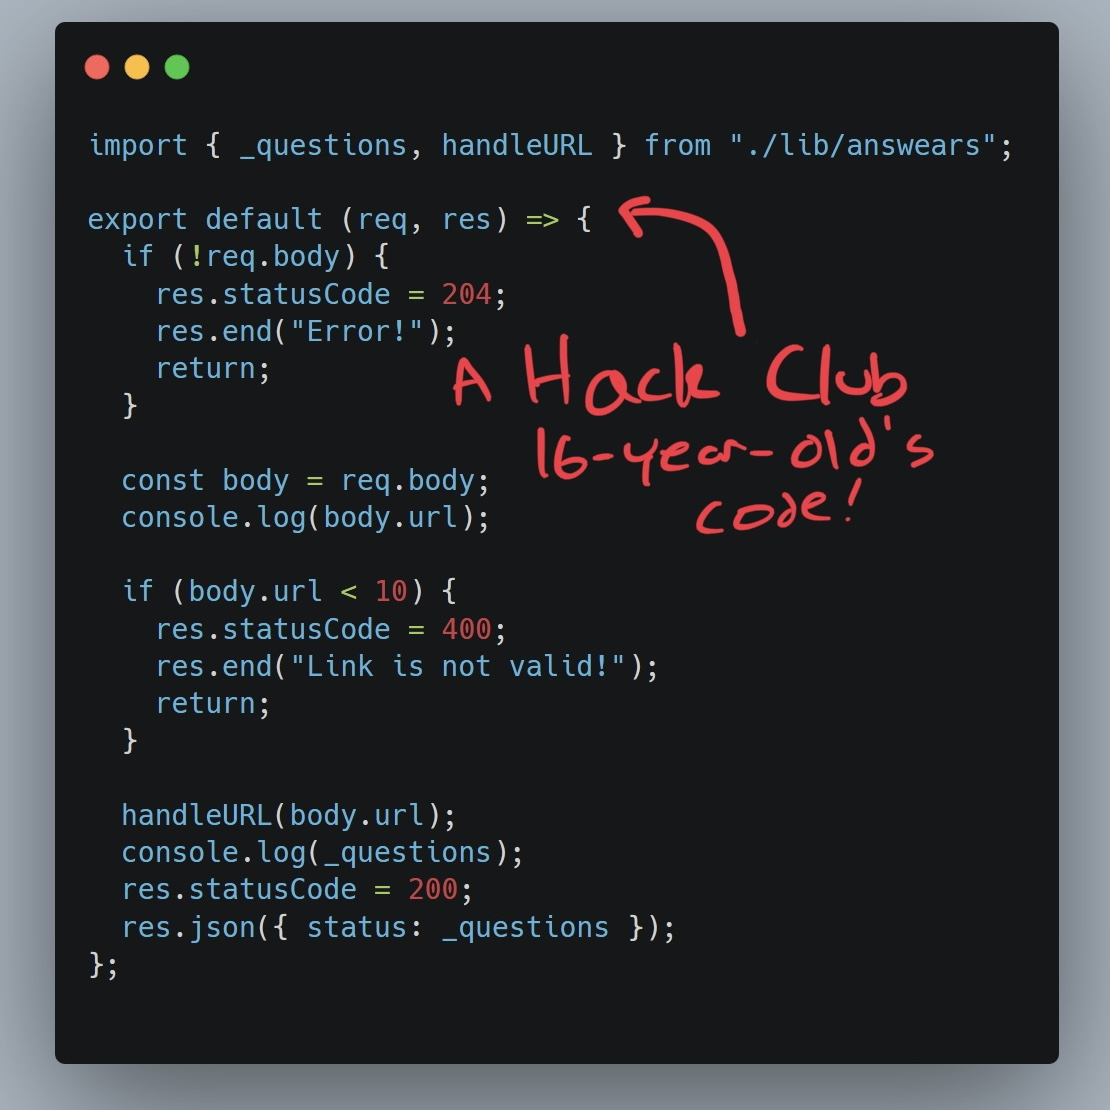 Screenshot of serverless function code by a 16-year-old Hack Clubber